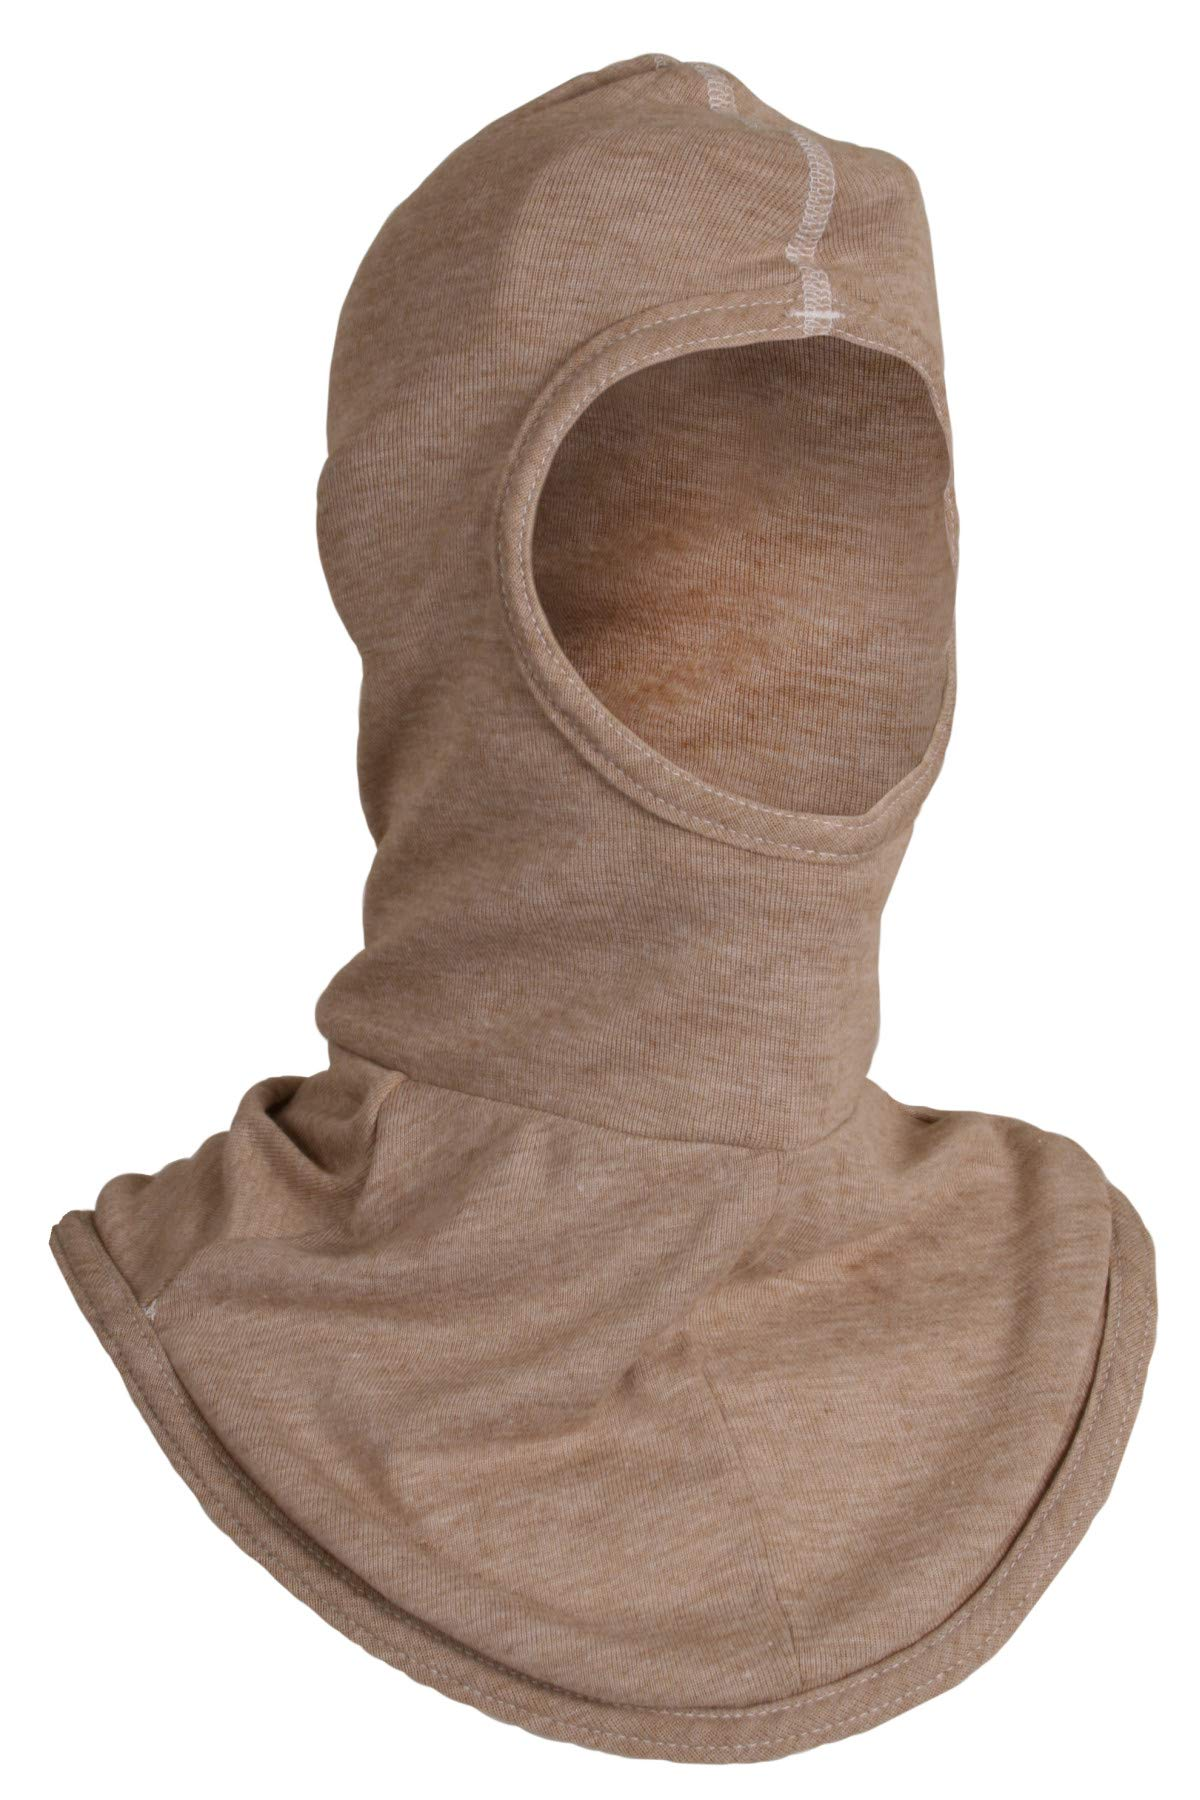 National Safety Apparel H31PK Double Layer PBI Face with Single Layer Bib, One Size, Khaki